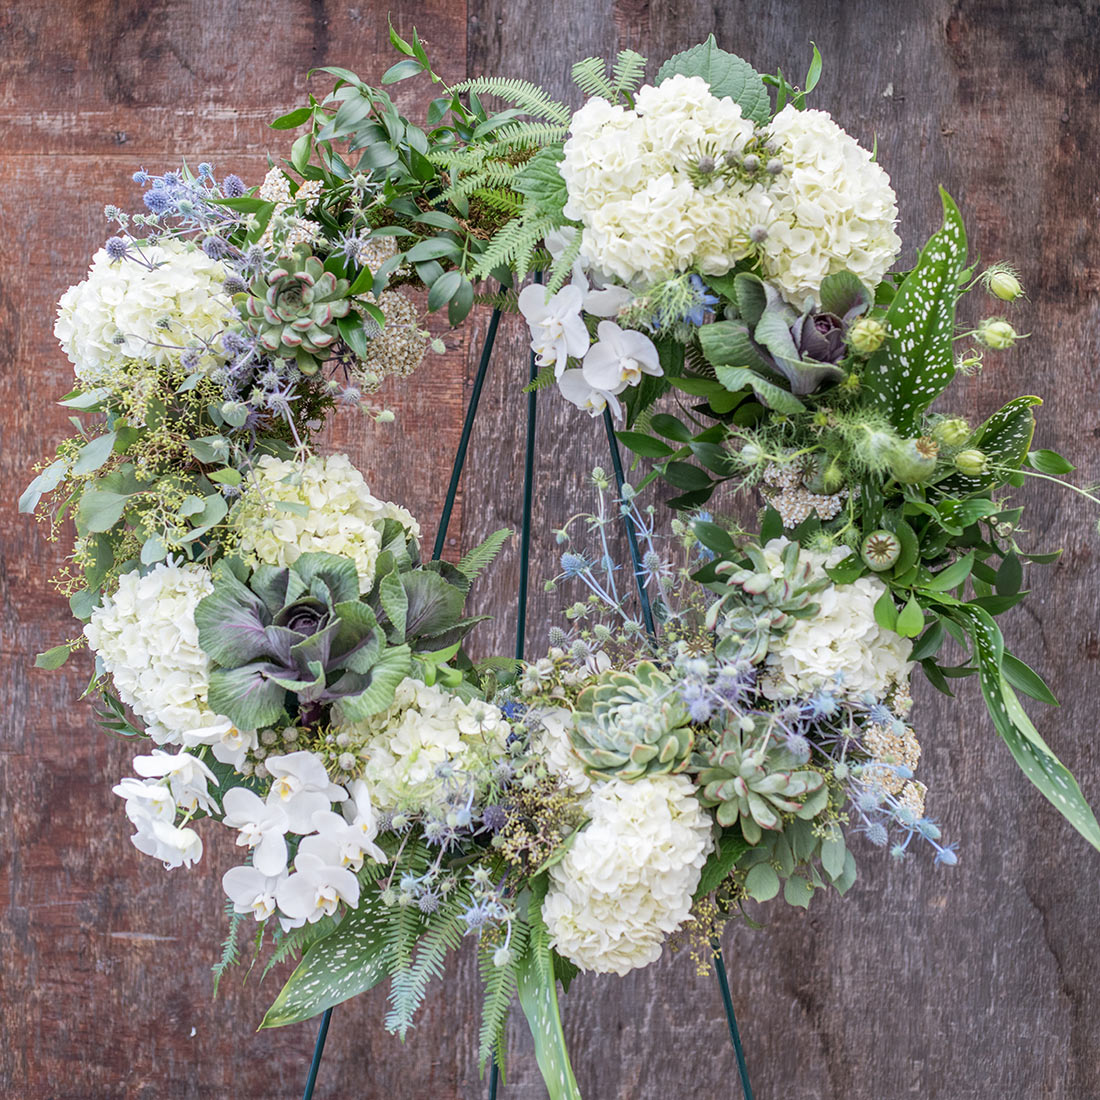 An image of white hydrangea funeral wreaths